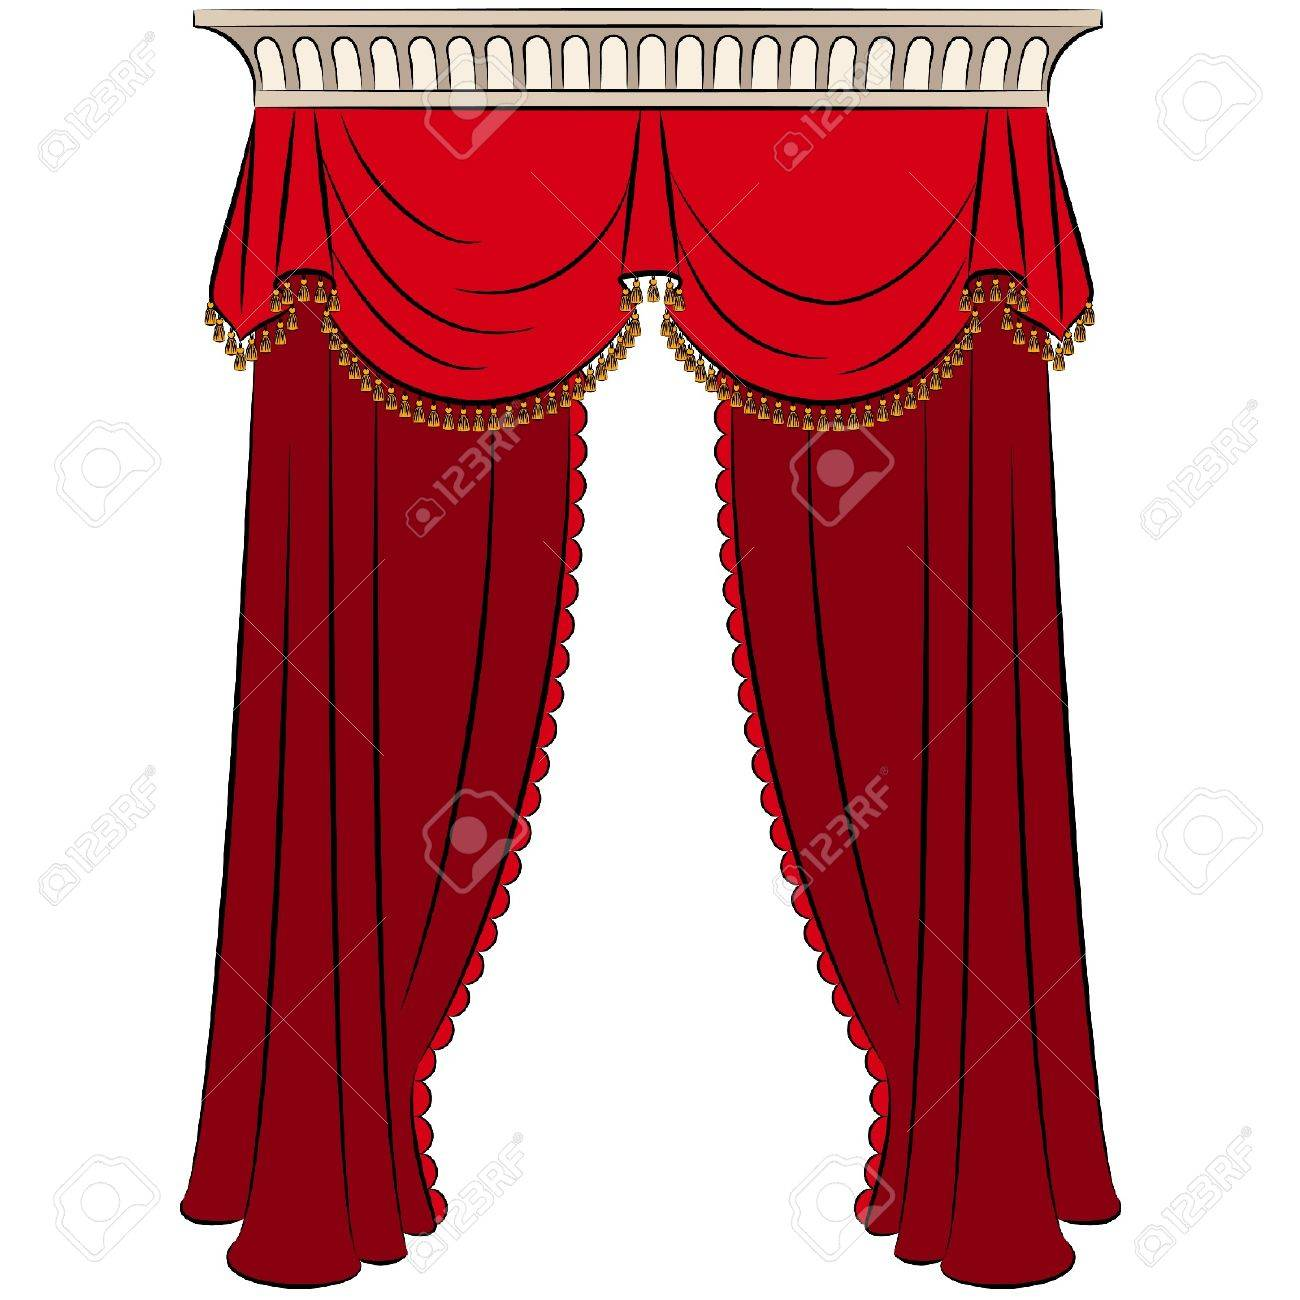 The vintage interior with curtain. Stock Vector - 10719491